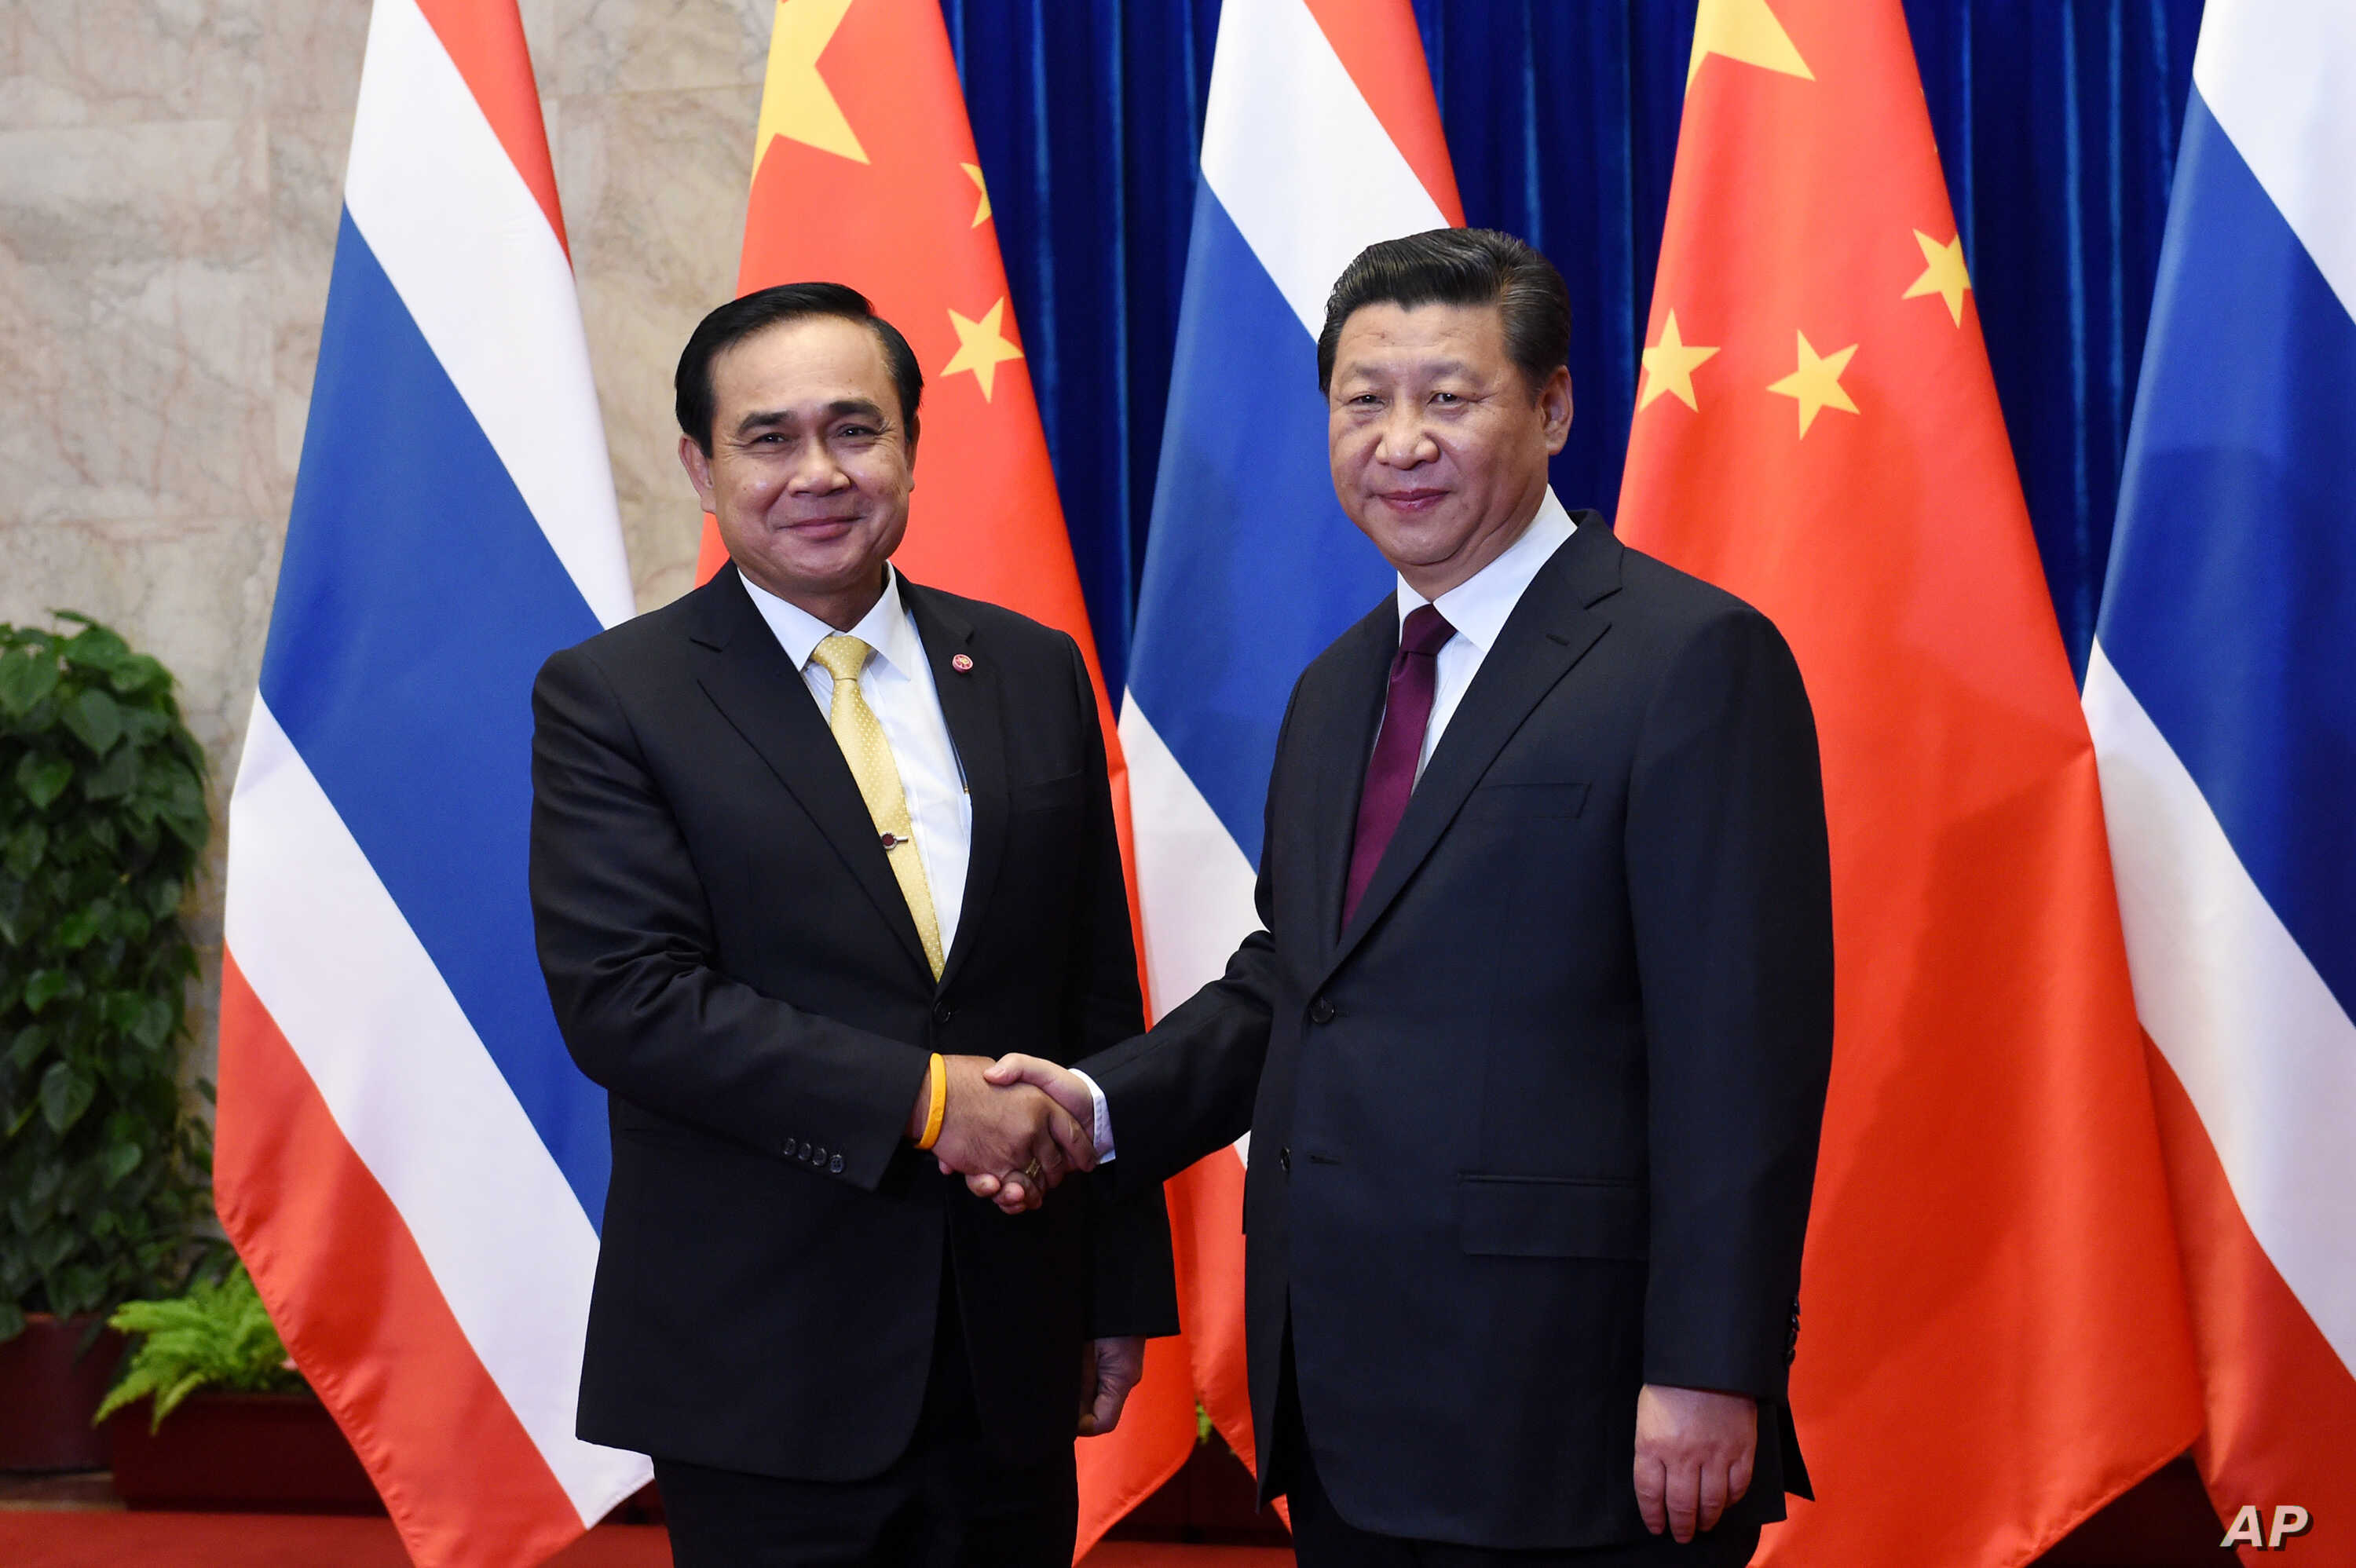 FILE - Thai Prime Minister Prayut Chan-ocha, left,  shakes hands with Chinese President Xi Jinping, right,  before a meeting at the Great Hall of the People in Beijing, Dec. 23, 2014.